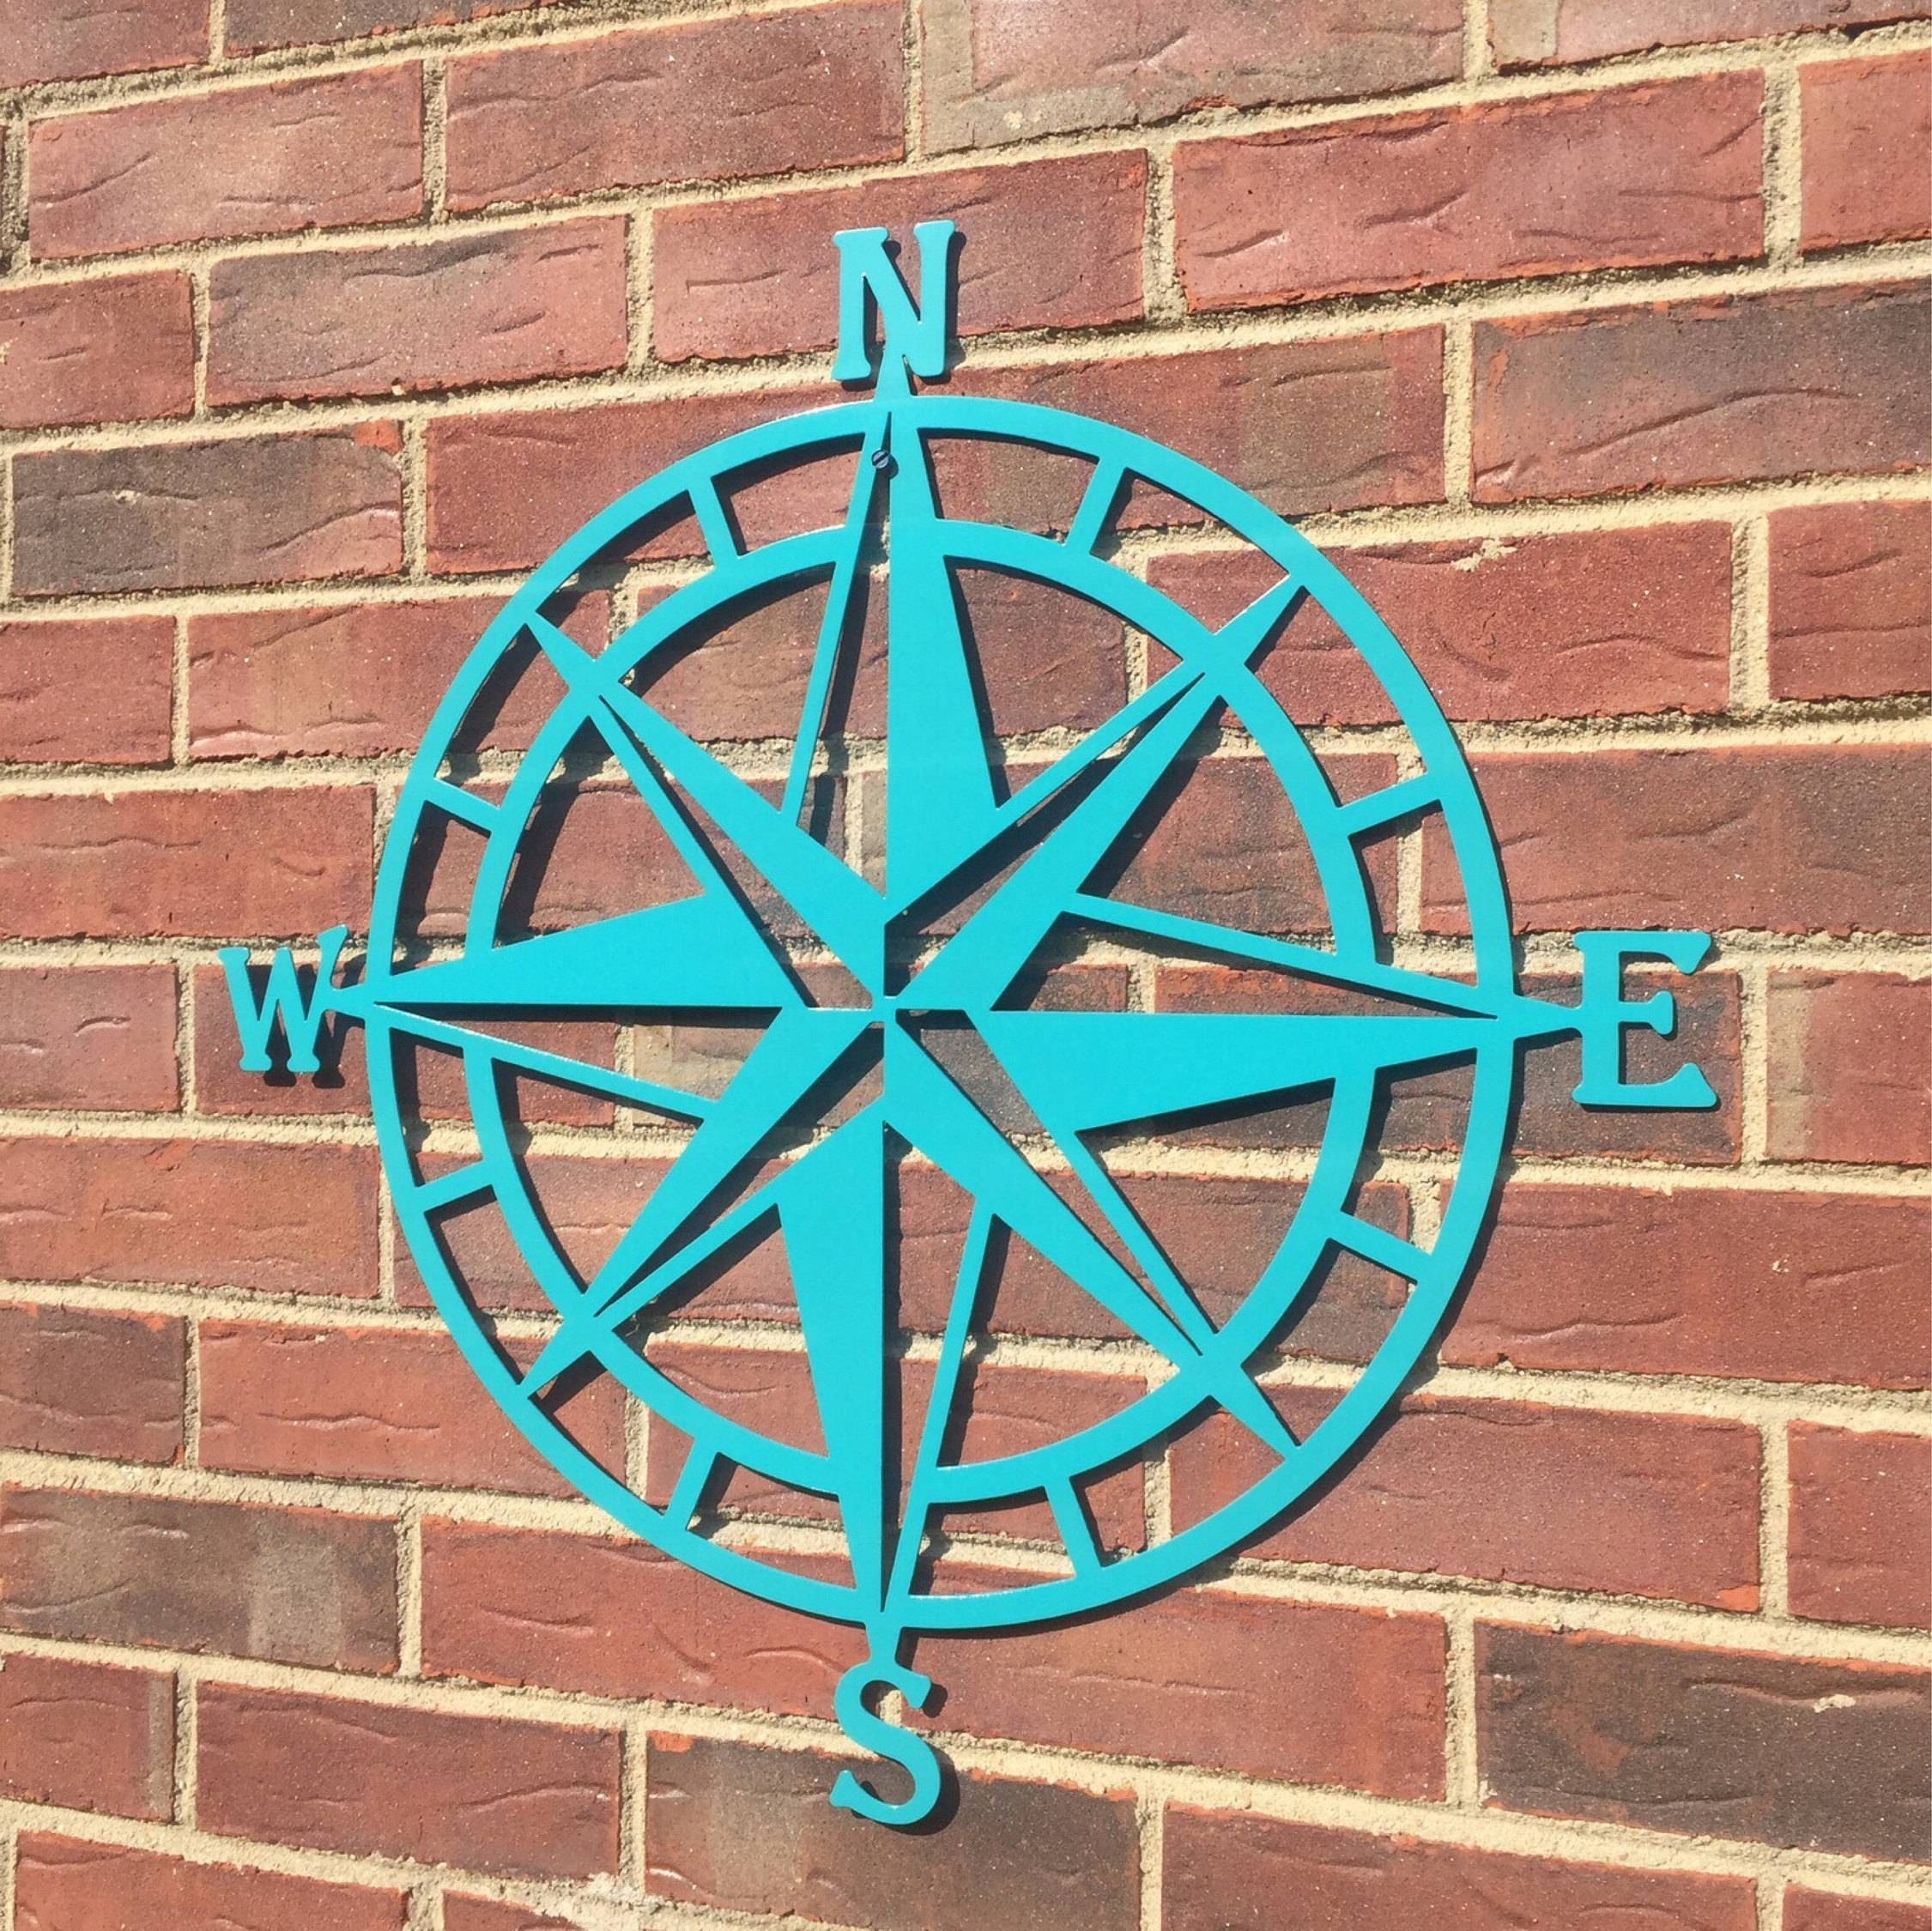 Steel Nautical Star Compass Wall Art Nautical Decor Metal With Regard To Best And Newest Decorative Outdoor Metal Wall Art (Gallery 10 of 20)